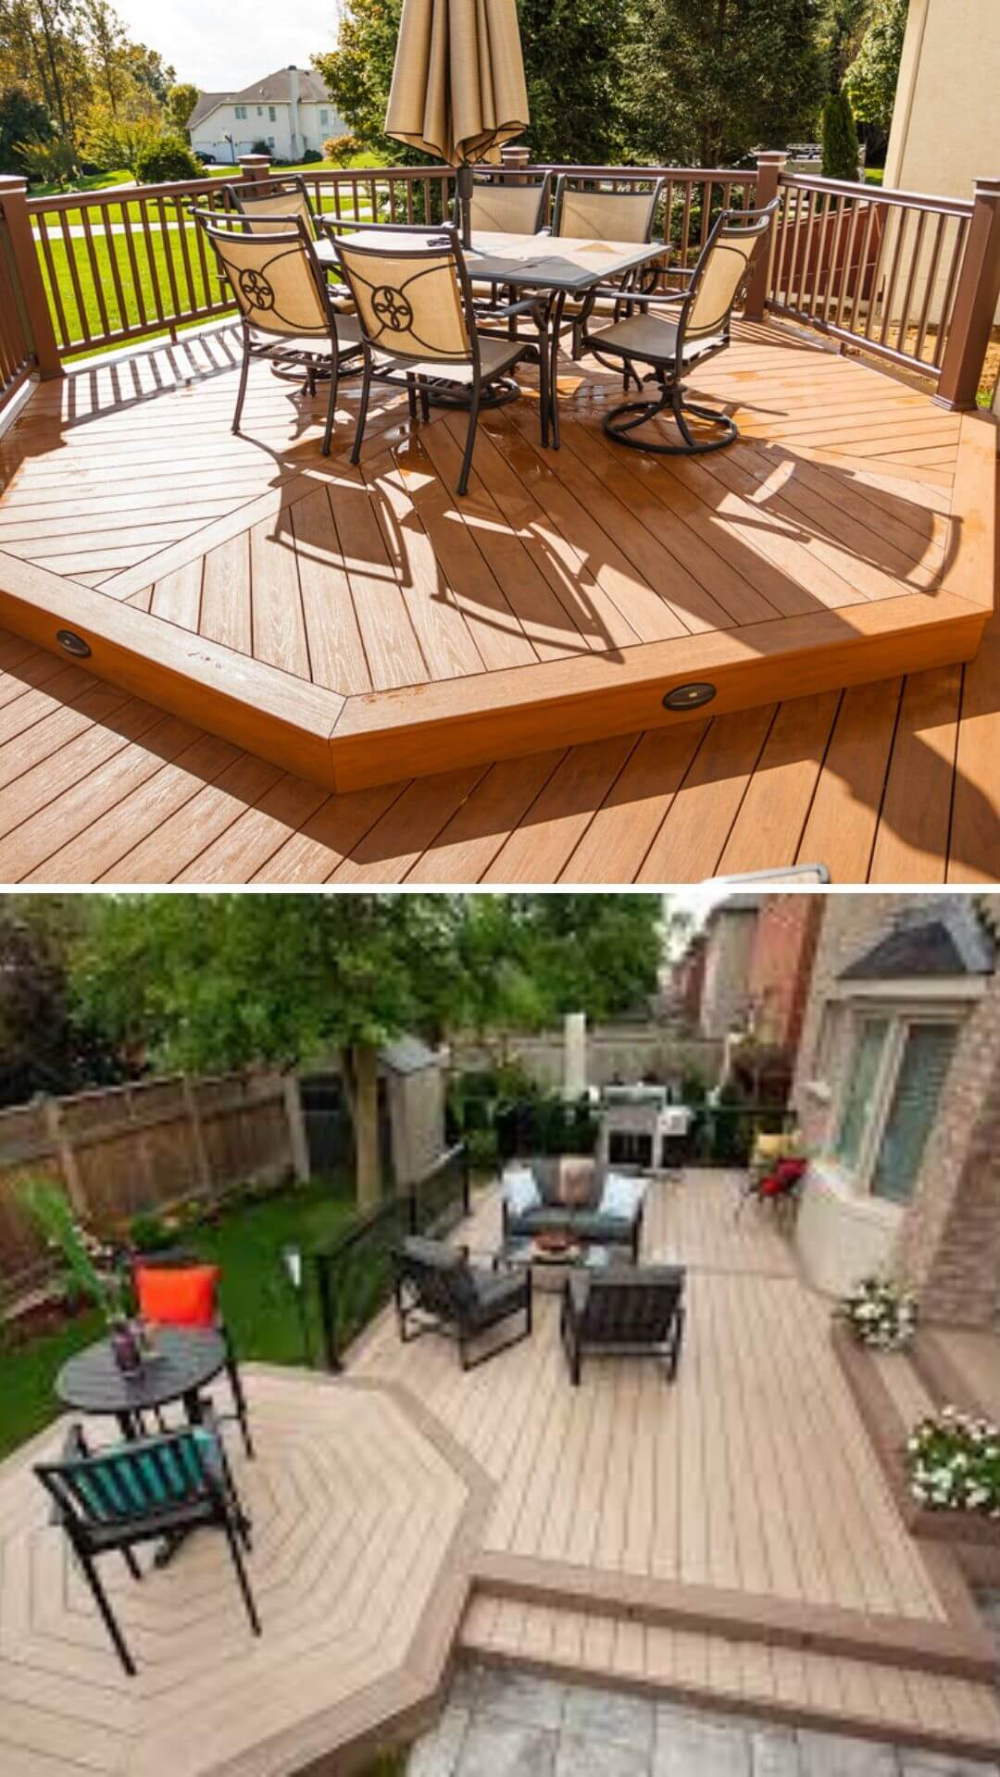 15 Inexpensive Diy Deck Ideas To Spice Up Your Outdoor Patio In